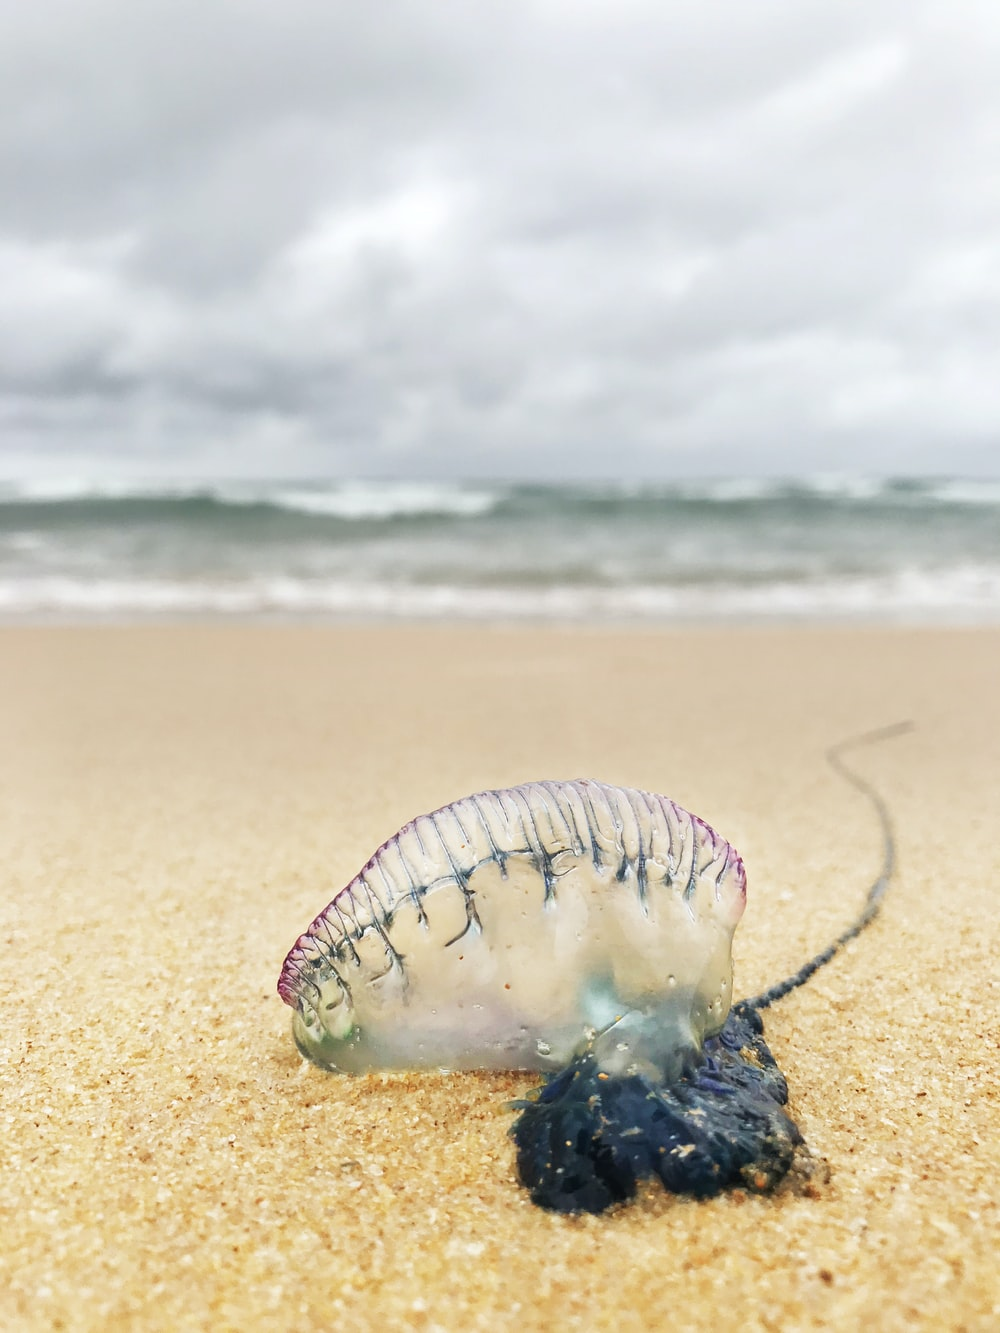 purple and white sea creature on beach shore during daytime